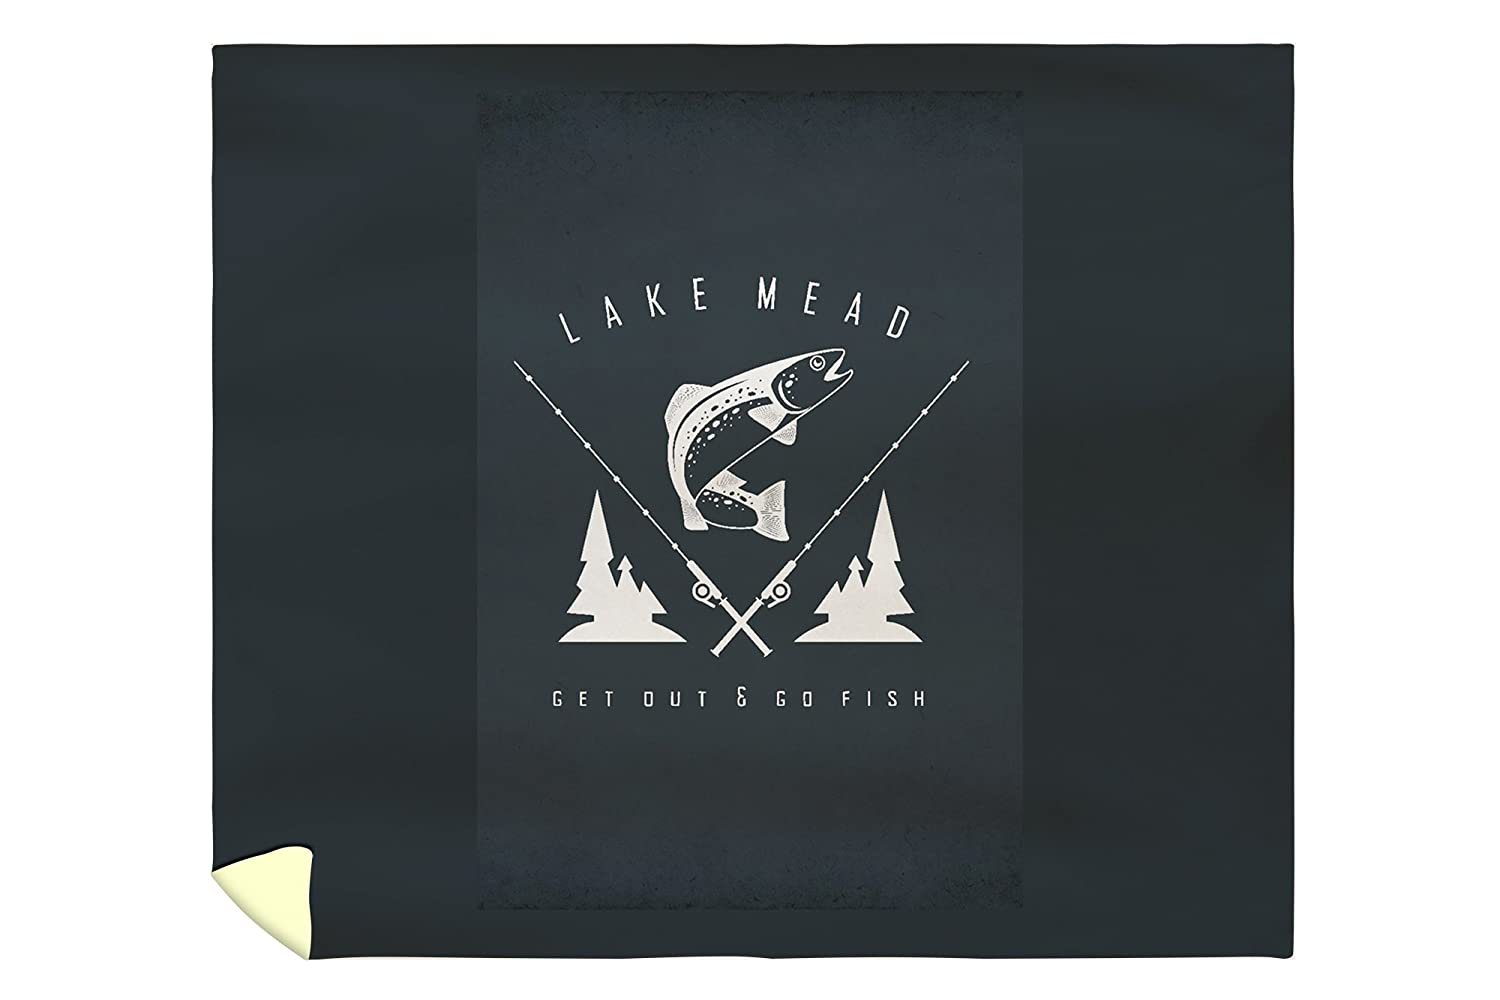 Lake Mead - Get Out and Fish - Trout and Poles - Badge (88x104 King Microfiber Duvet Cover)